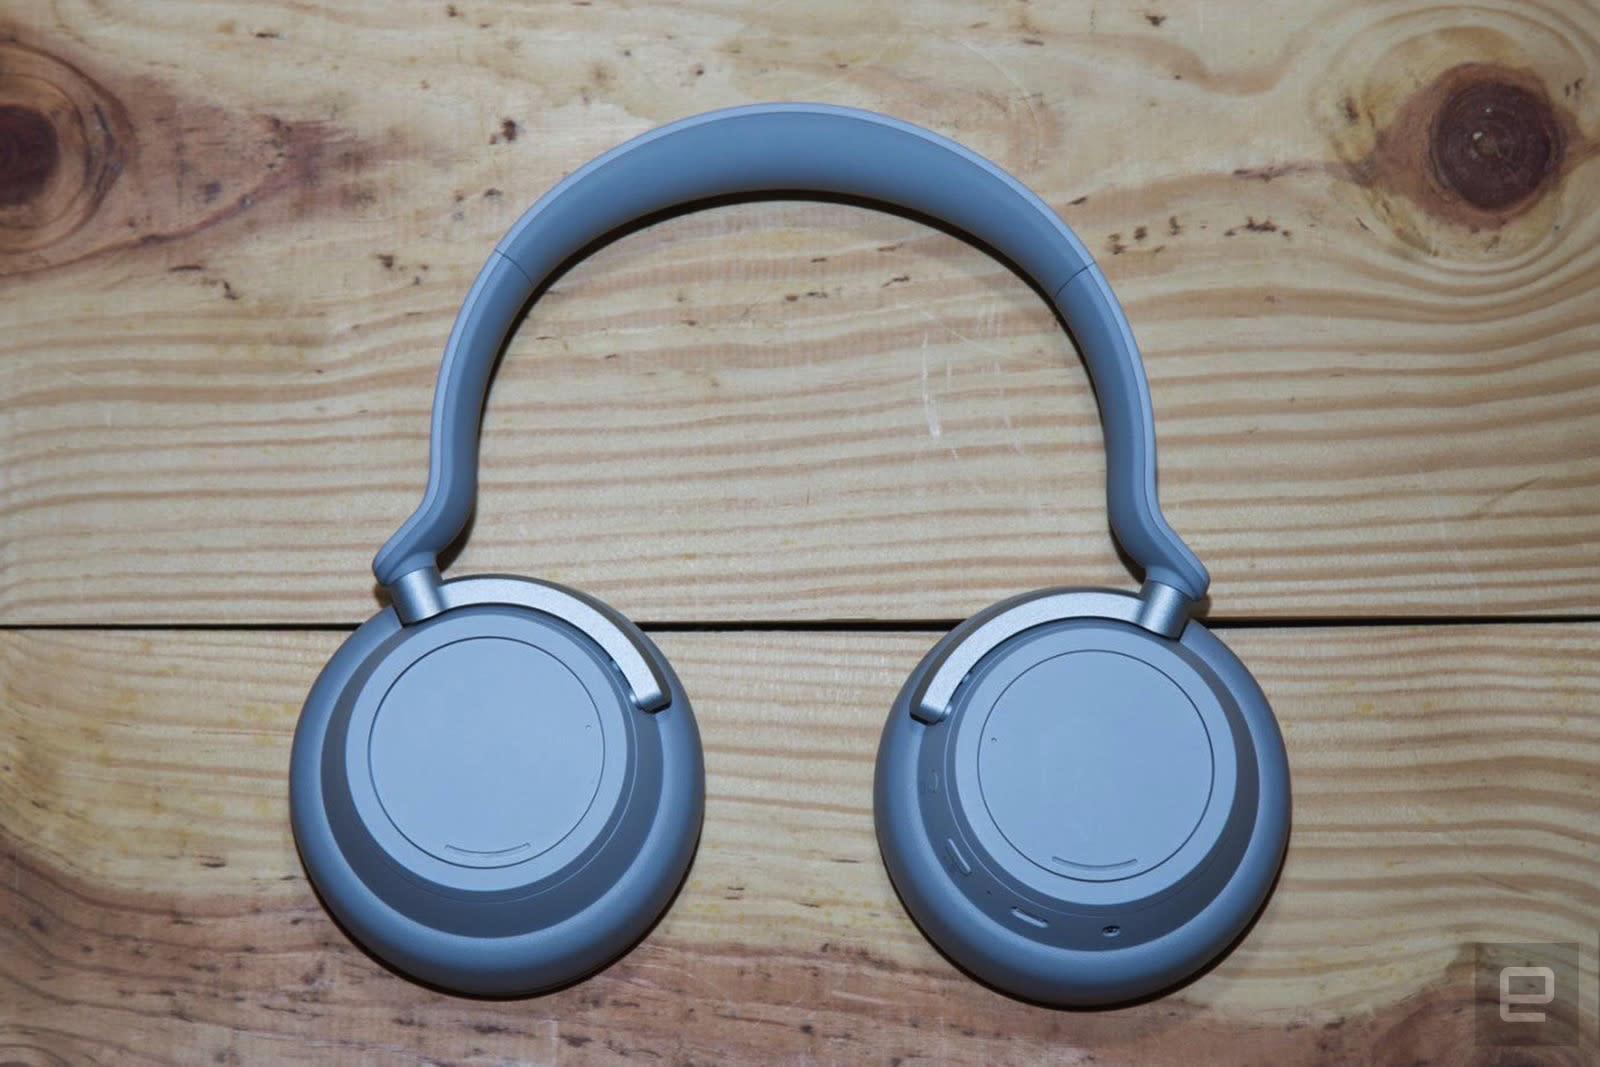 Microsoft's Surface Headphones drop to a record low $111 at Woot